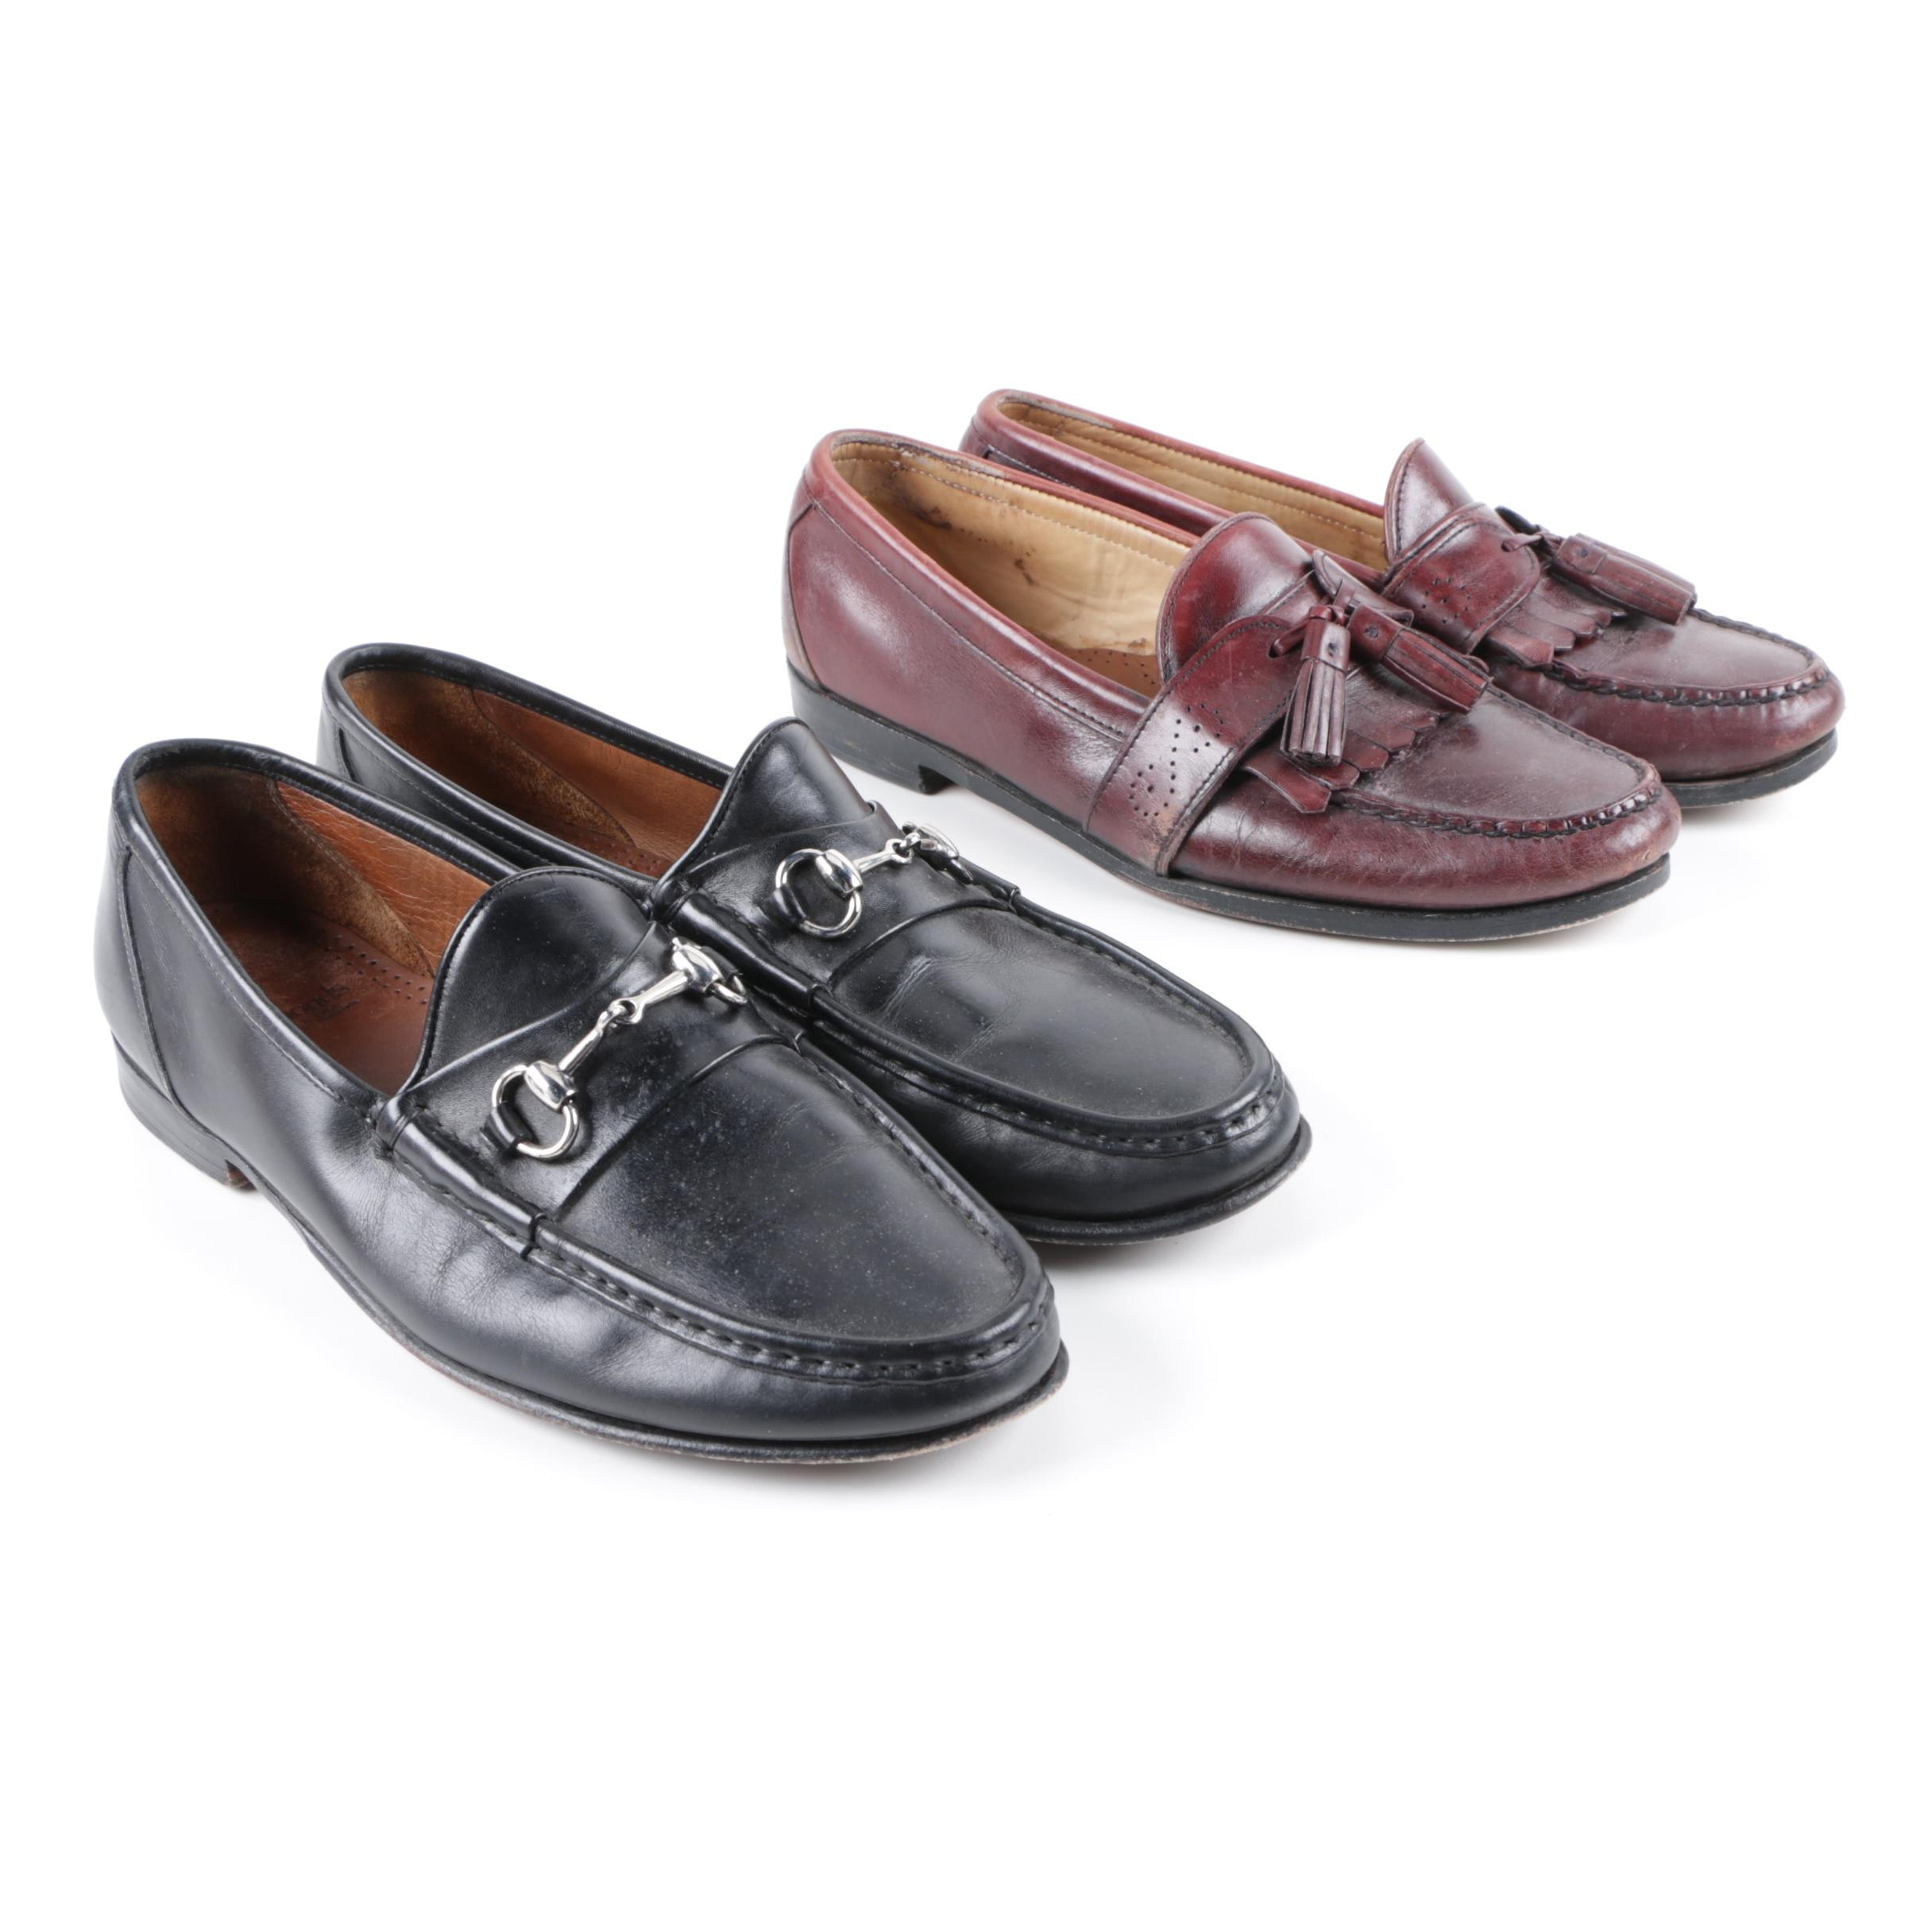 Men's Allen Edmonds Leather Loafers